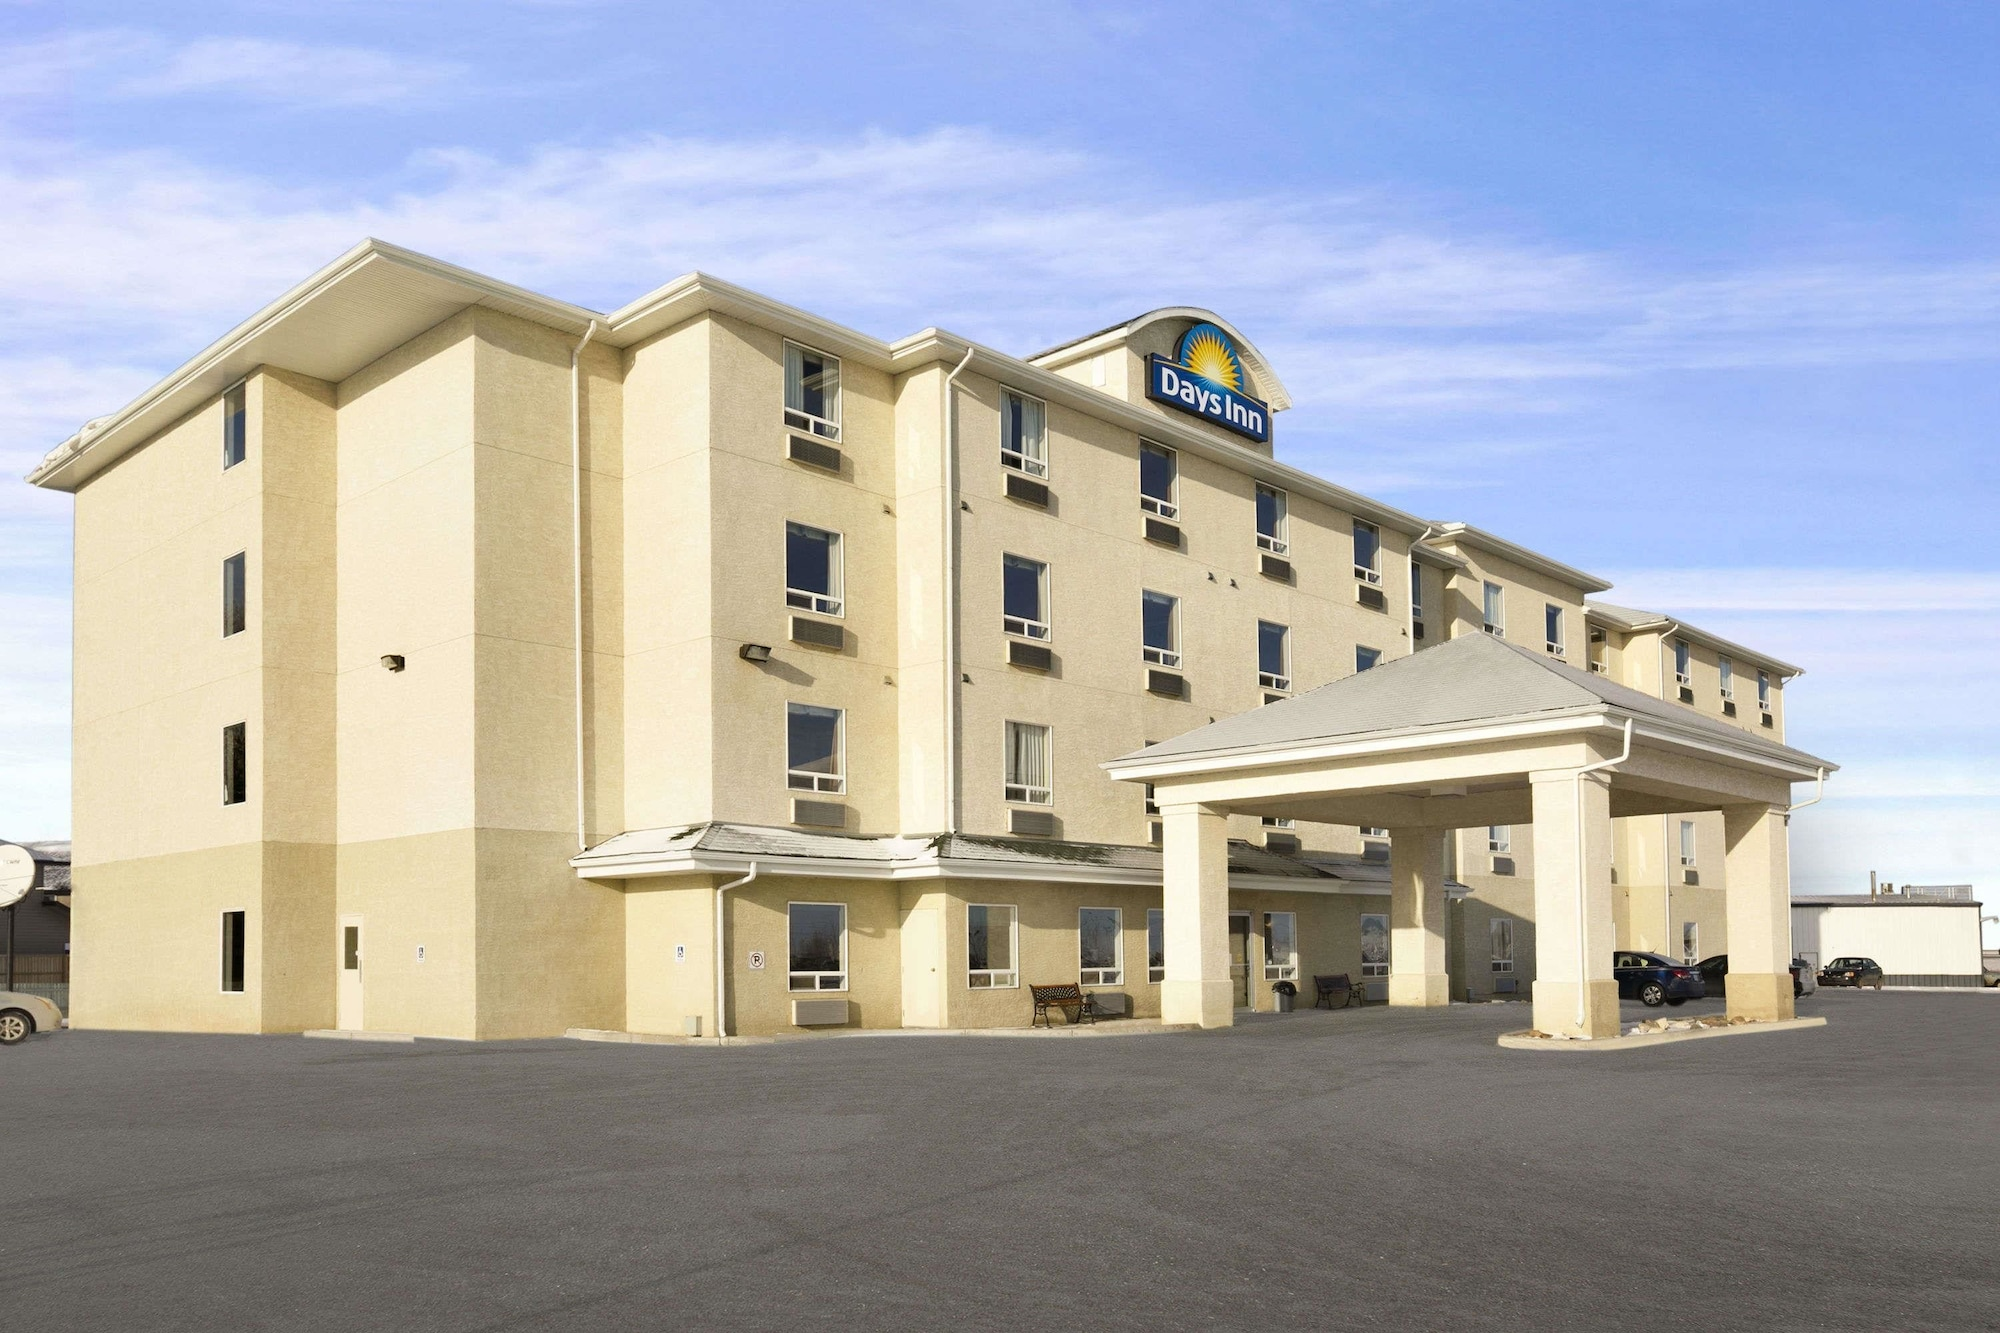 Days Inn by Wyndham Moose Jaw, Division No. 7